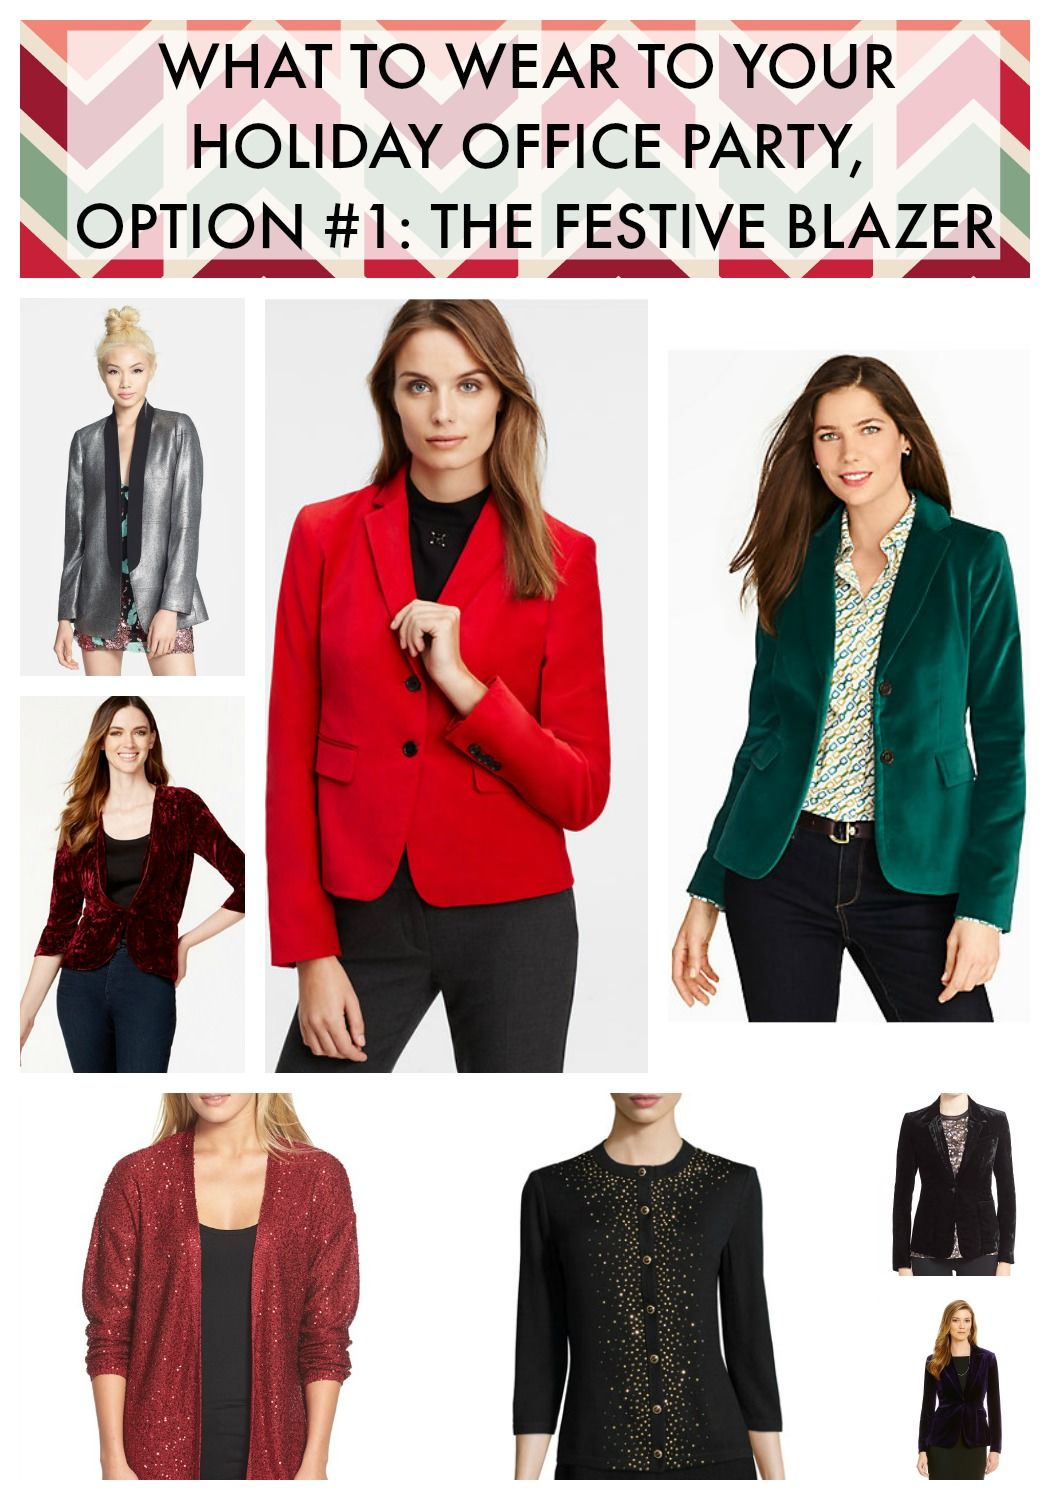 ive always loved a good festive blazer for the holiday office party